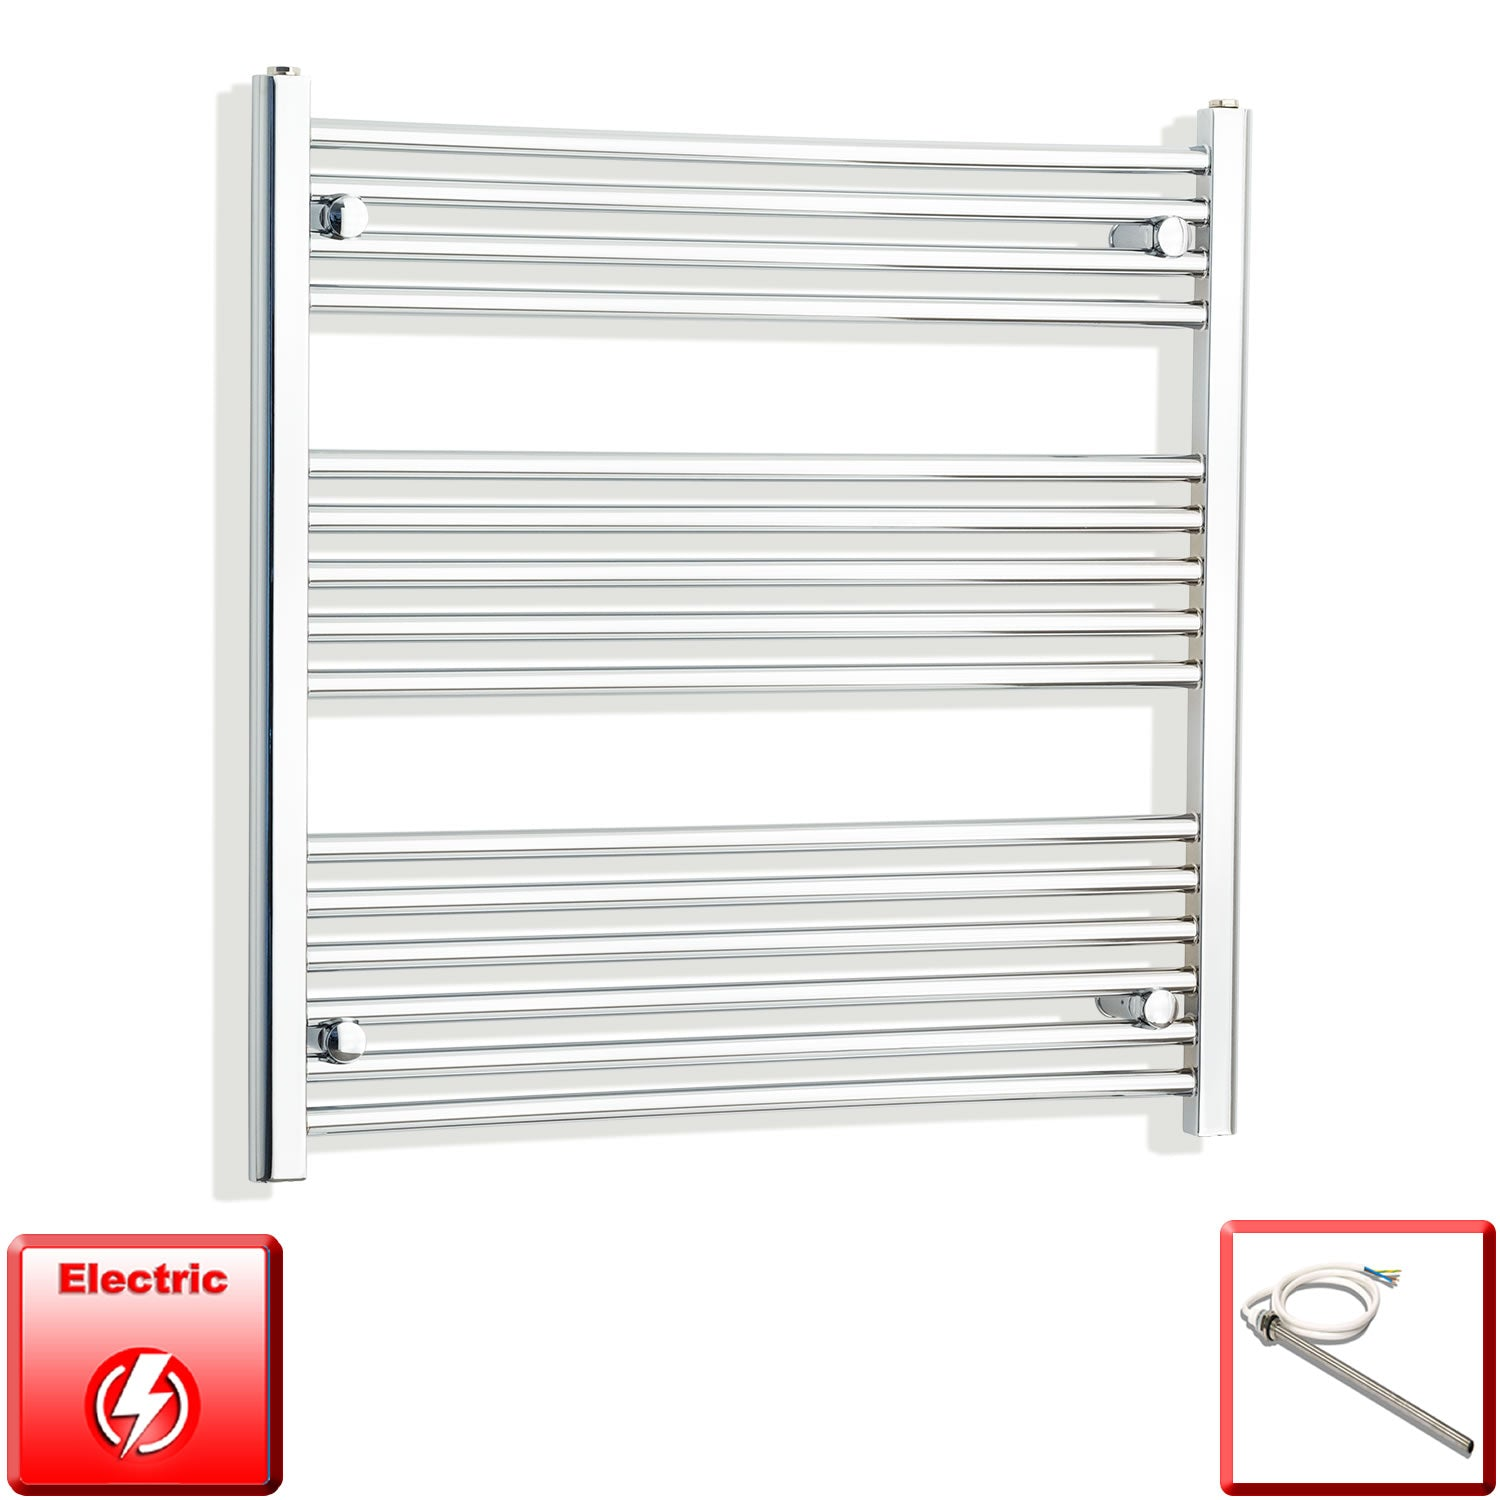 850mm Wide 800mm High Pre-Filled Chrome Electric Towel Rail Radiator With Single Heat Element